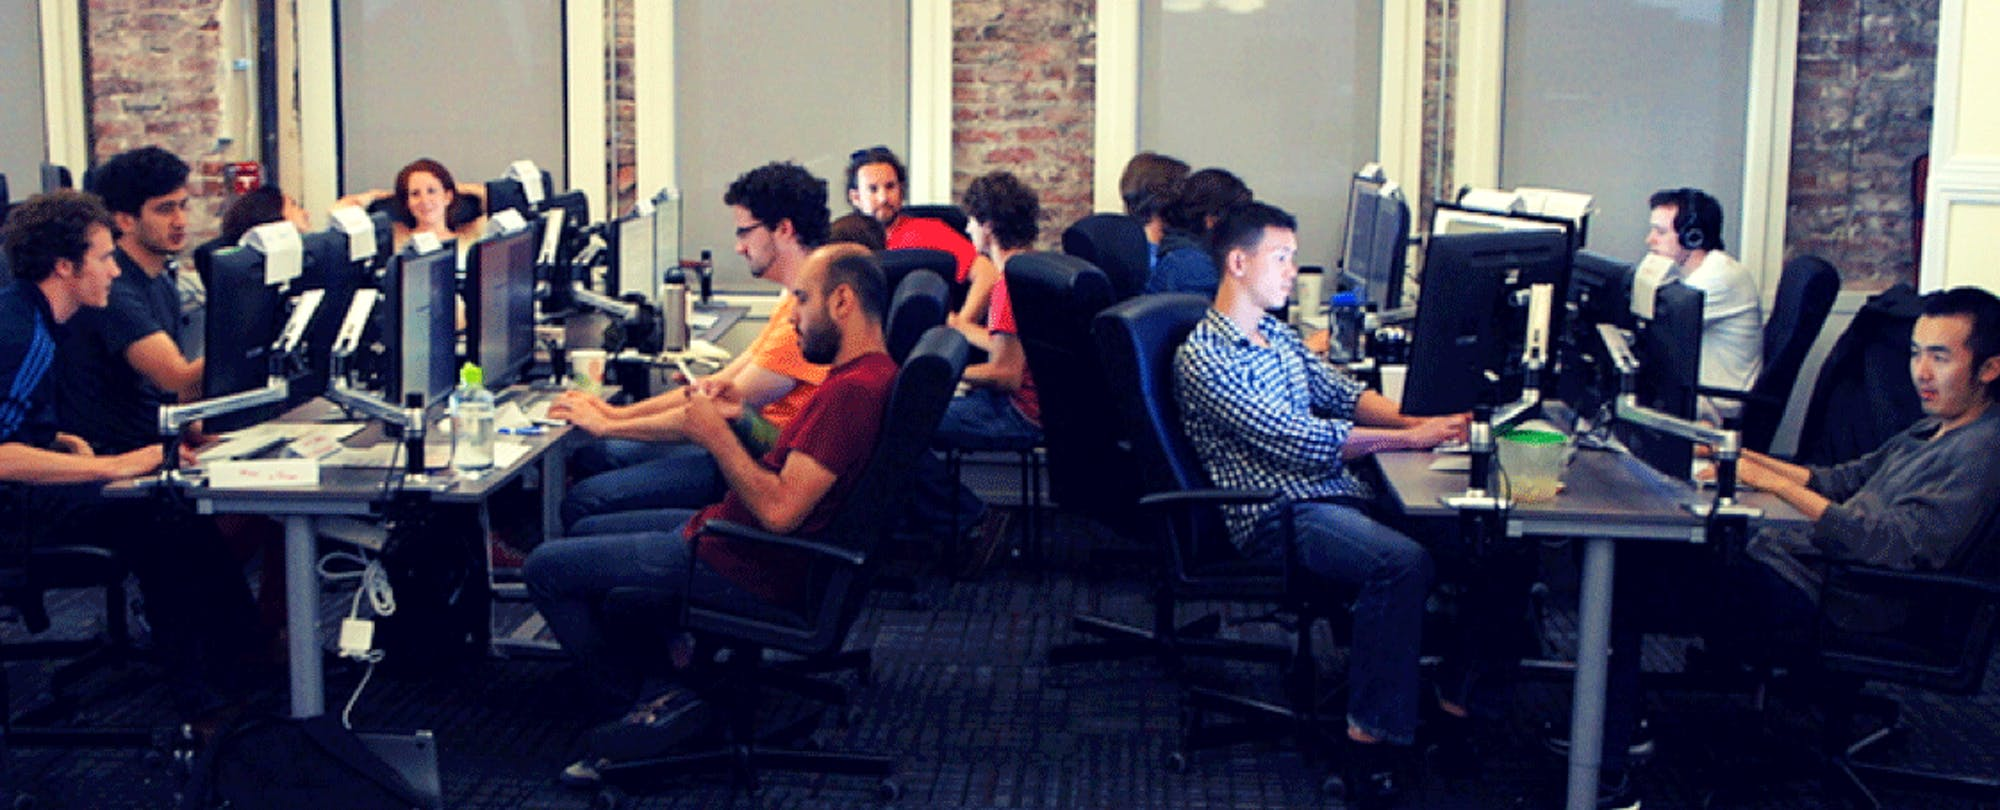 Hack Reactor Acquires MakerSquare for Increased Coding School Offerings